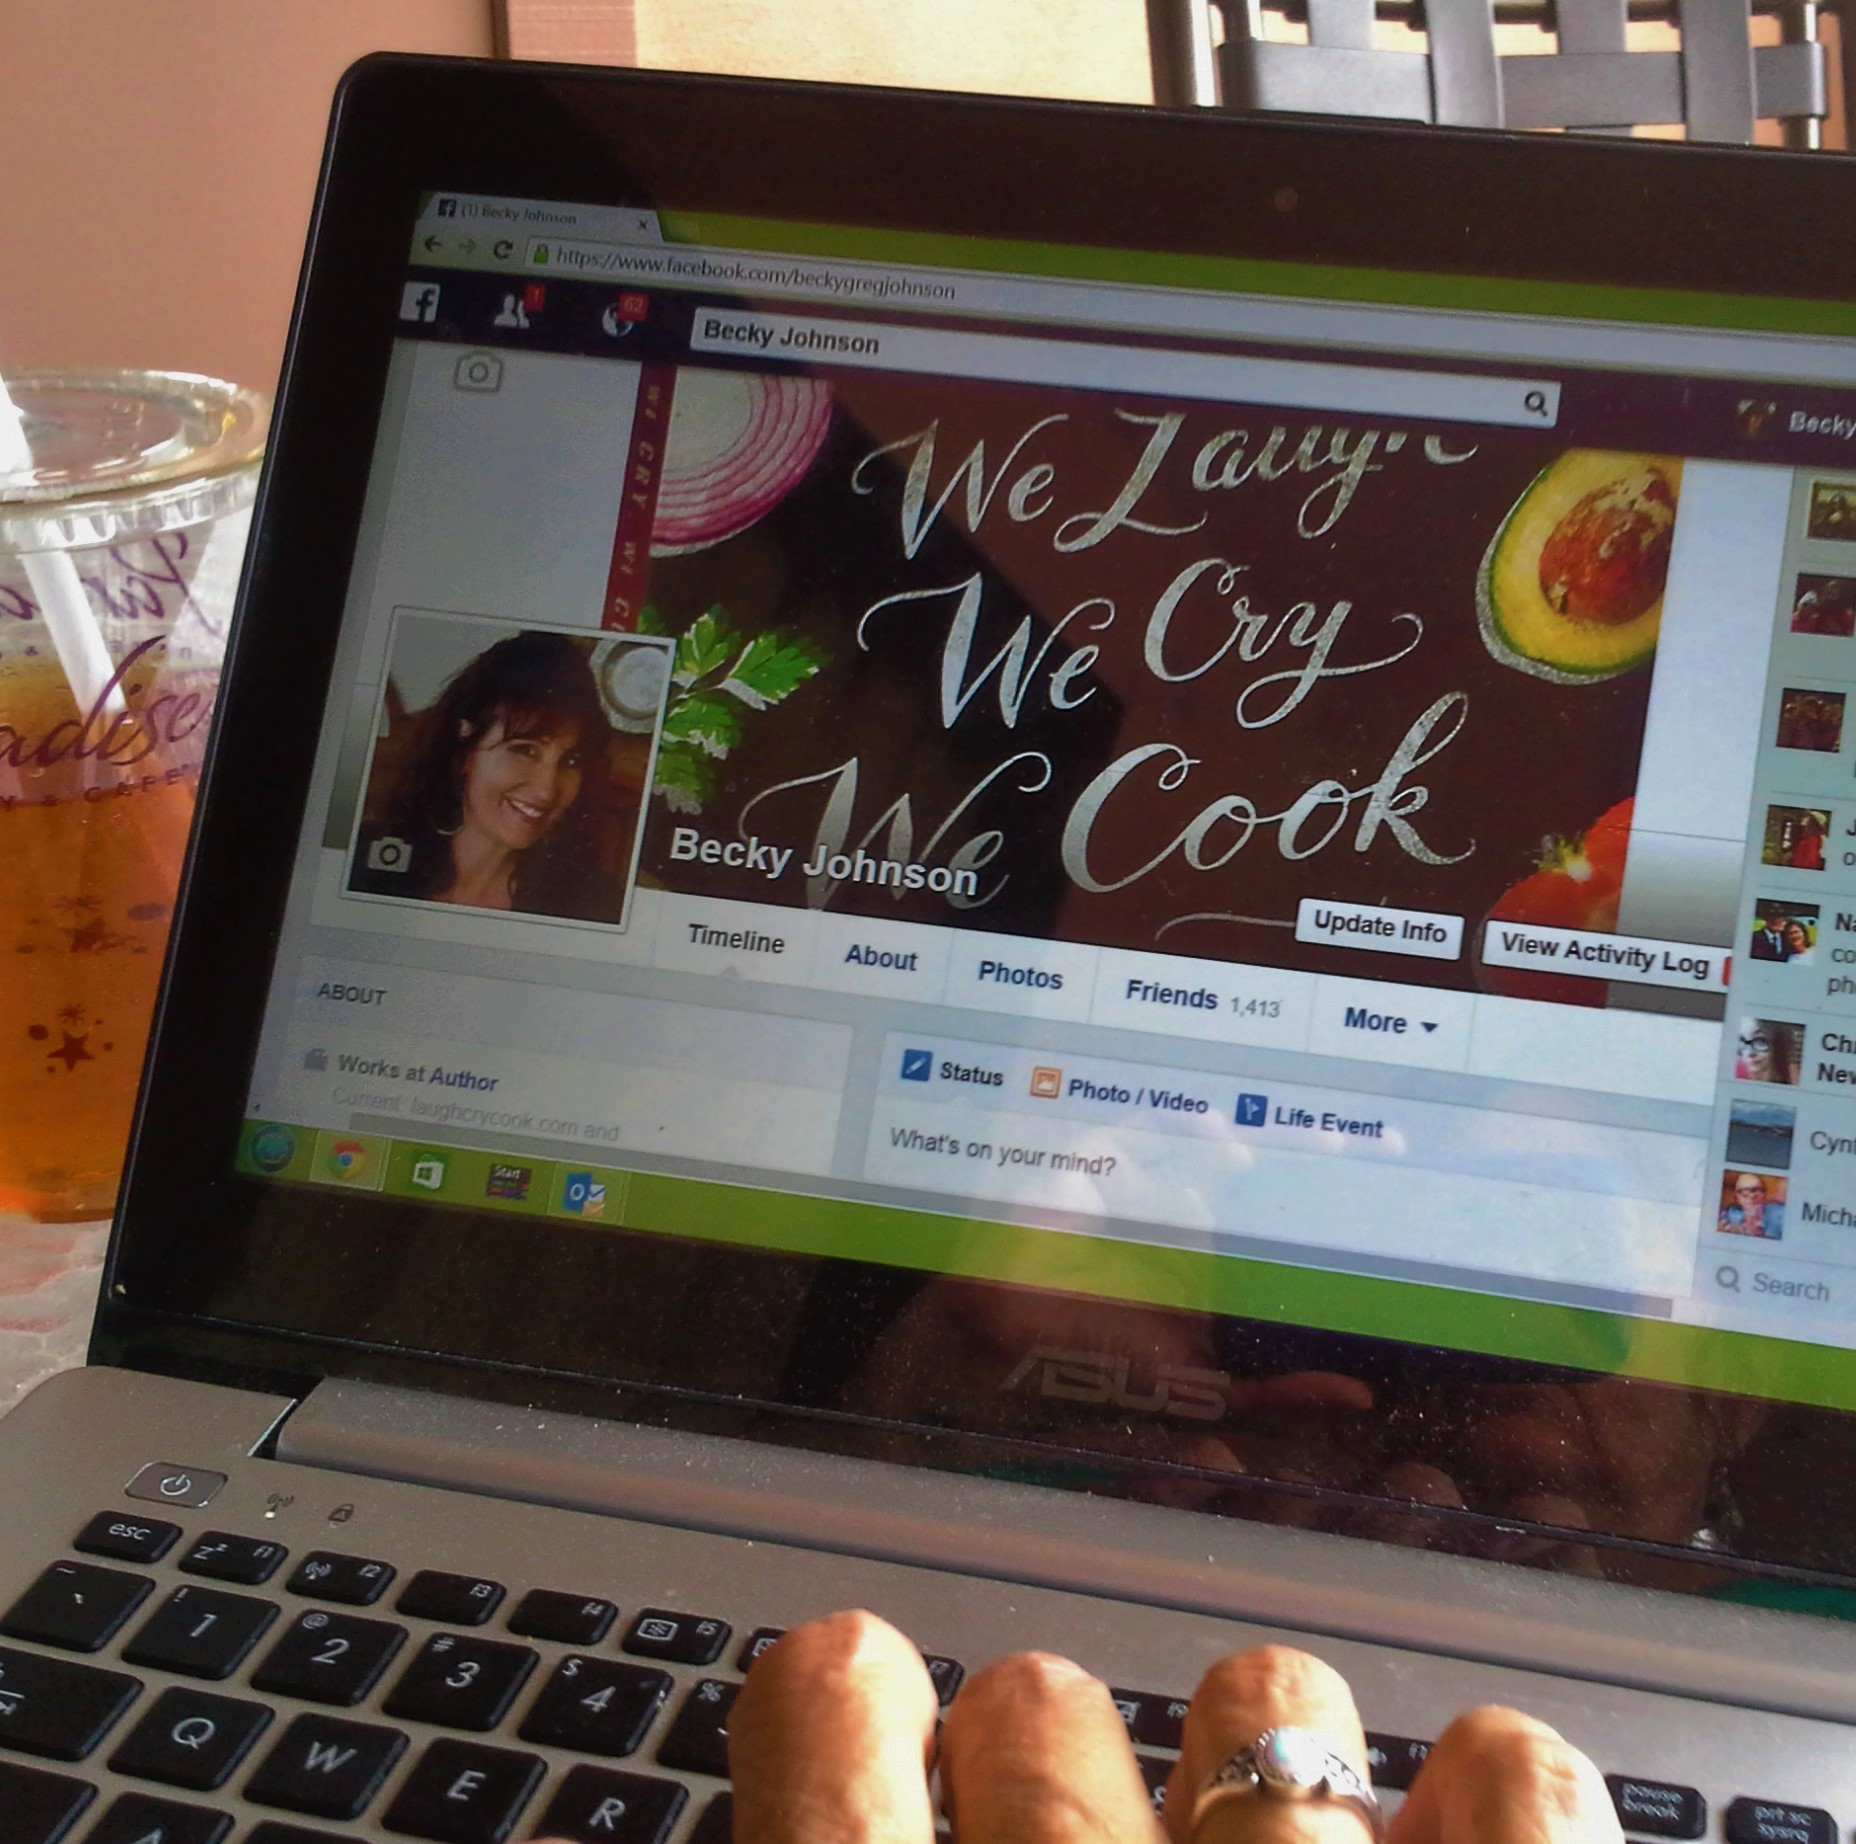 12 Reasons for Writers to Love Facebook